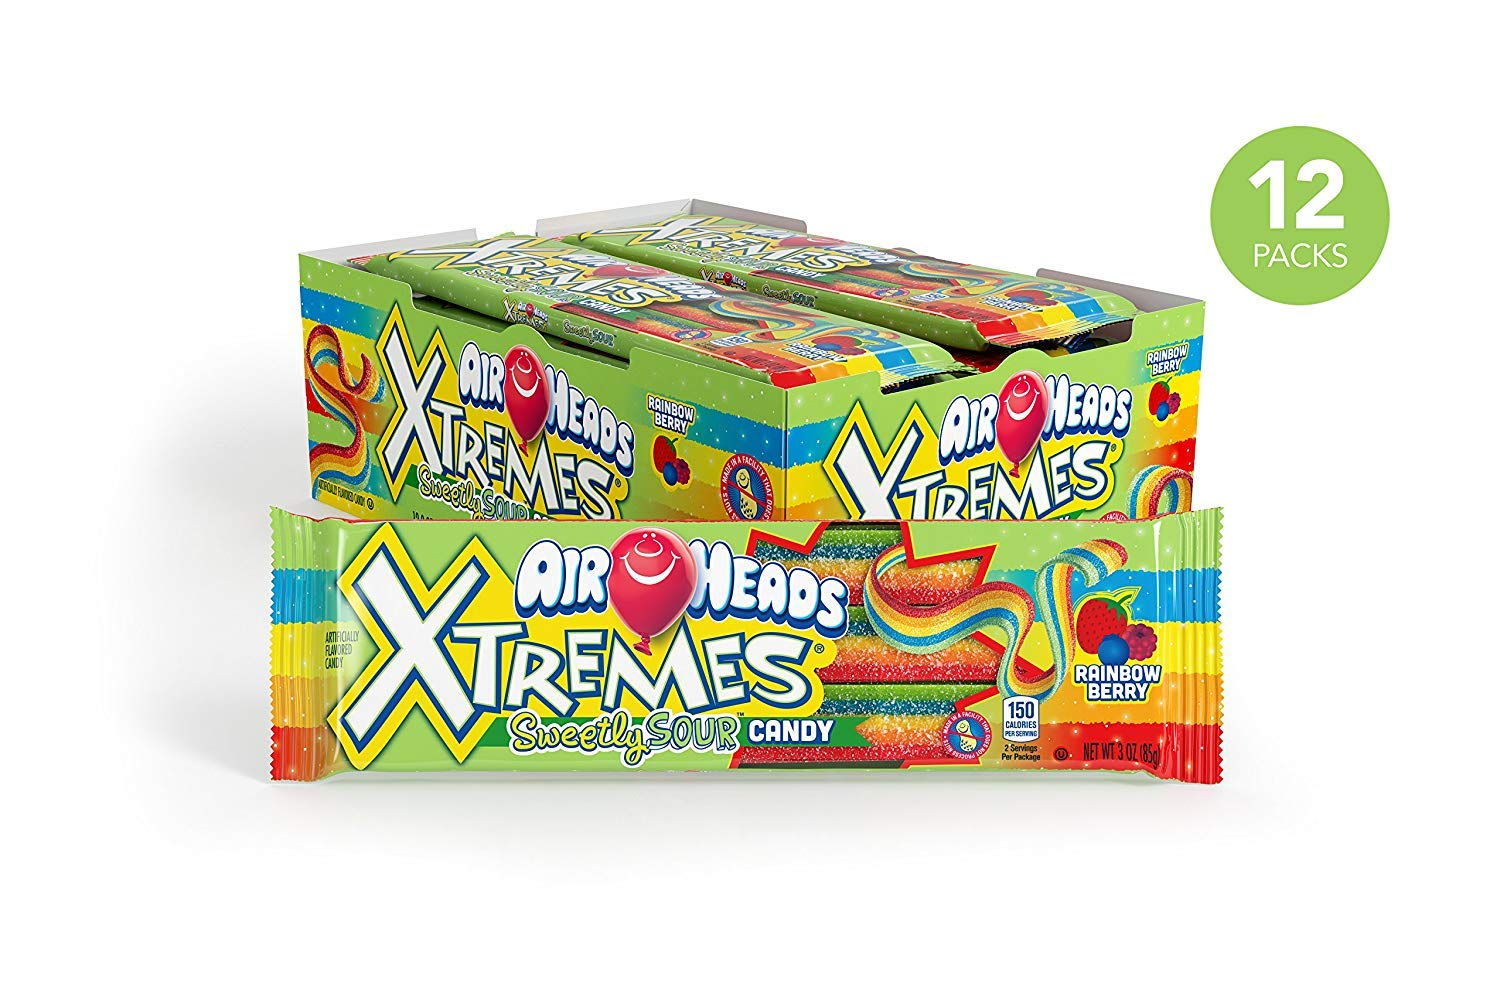 AirHeads Xtremes Sweetly Sour Candy Belts, Rainbow Berry, Party, Non Melting, 3 Ounce (Bulk Pack of 12)